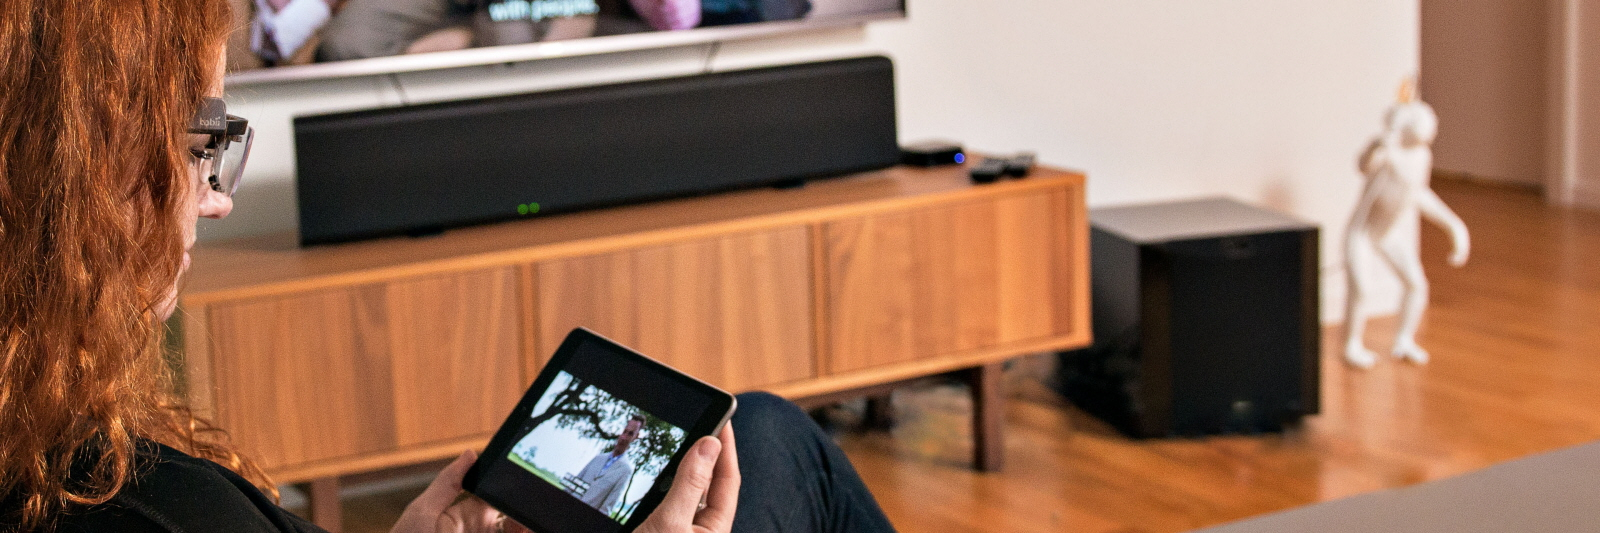 Tobii Pro Insight - Study in In-home environment